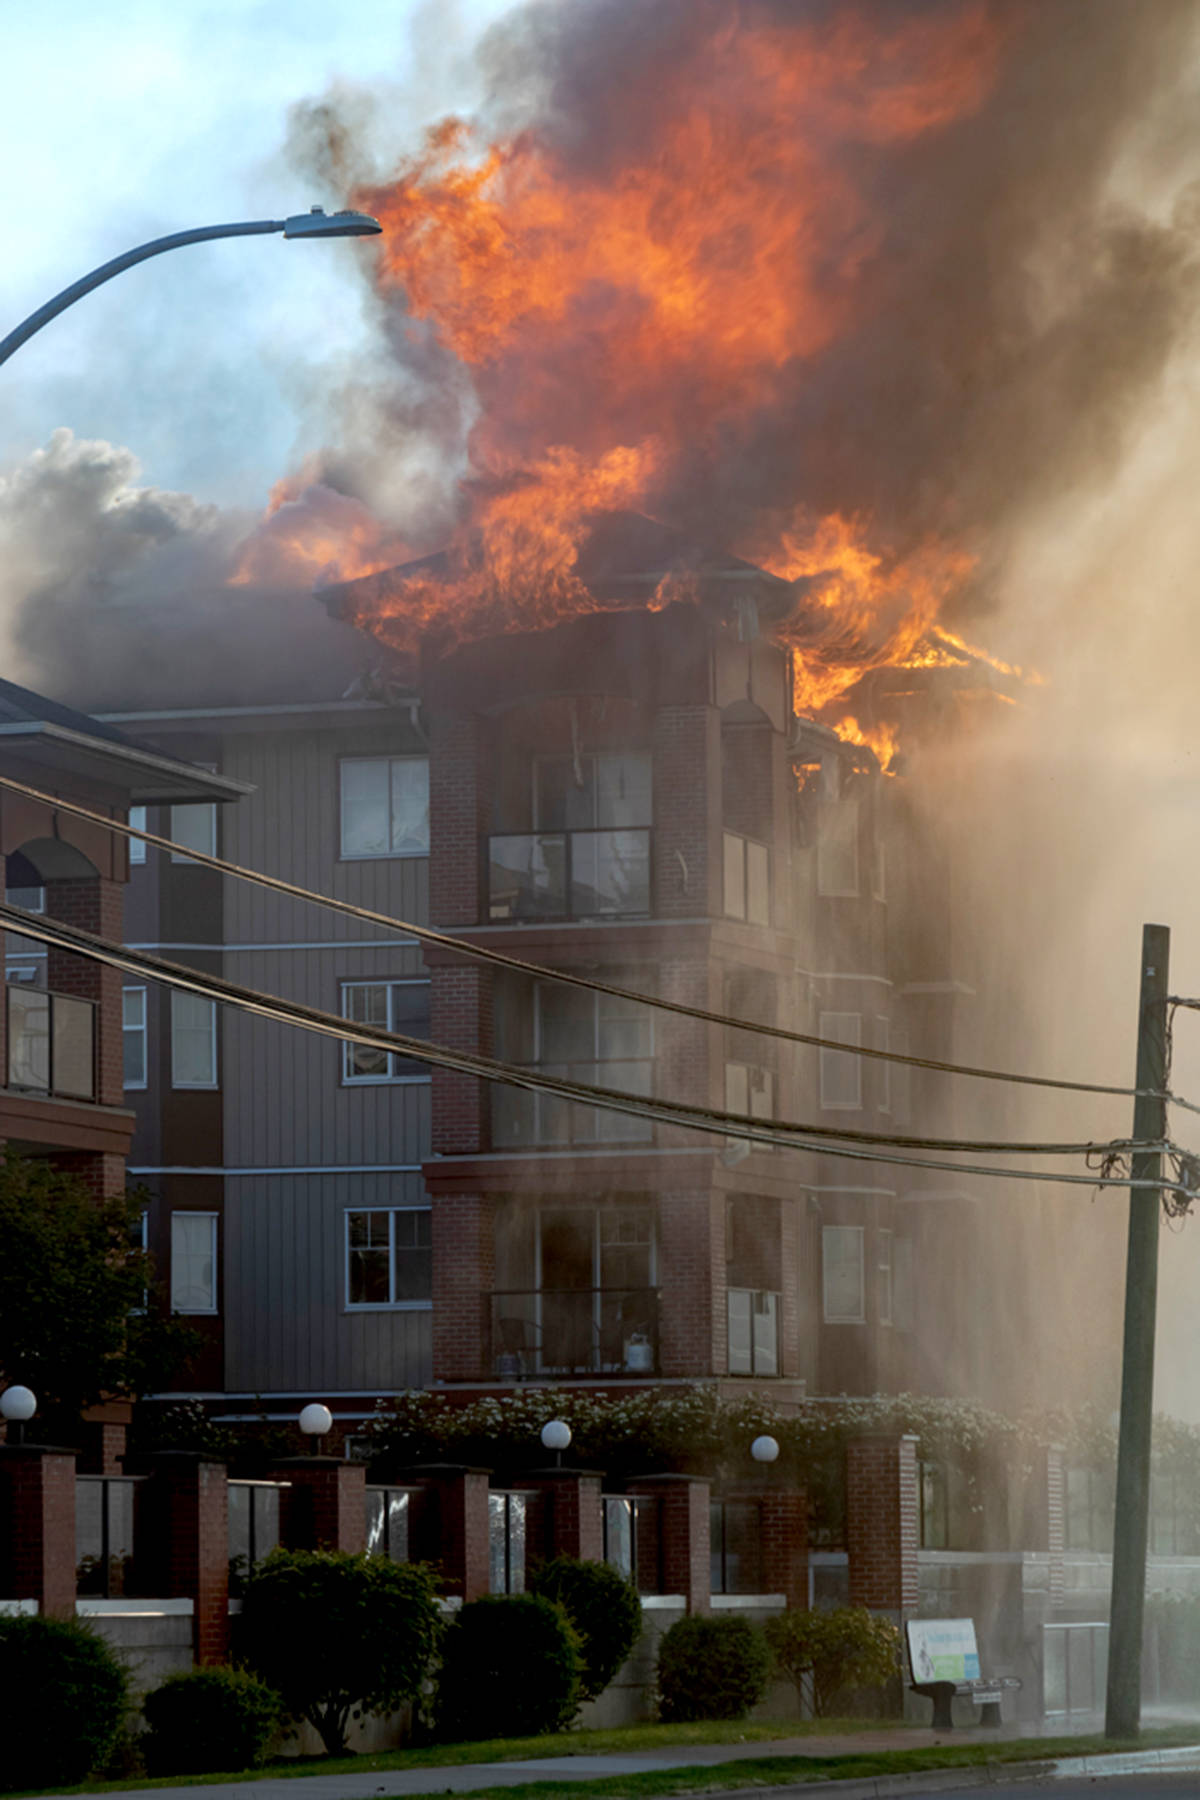 Outpouring of support for displaced Madison Place residents comes after Friday night fire